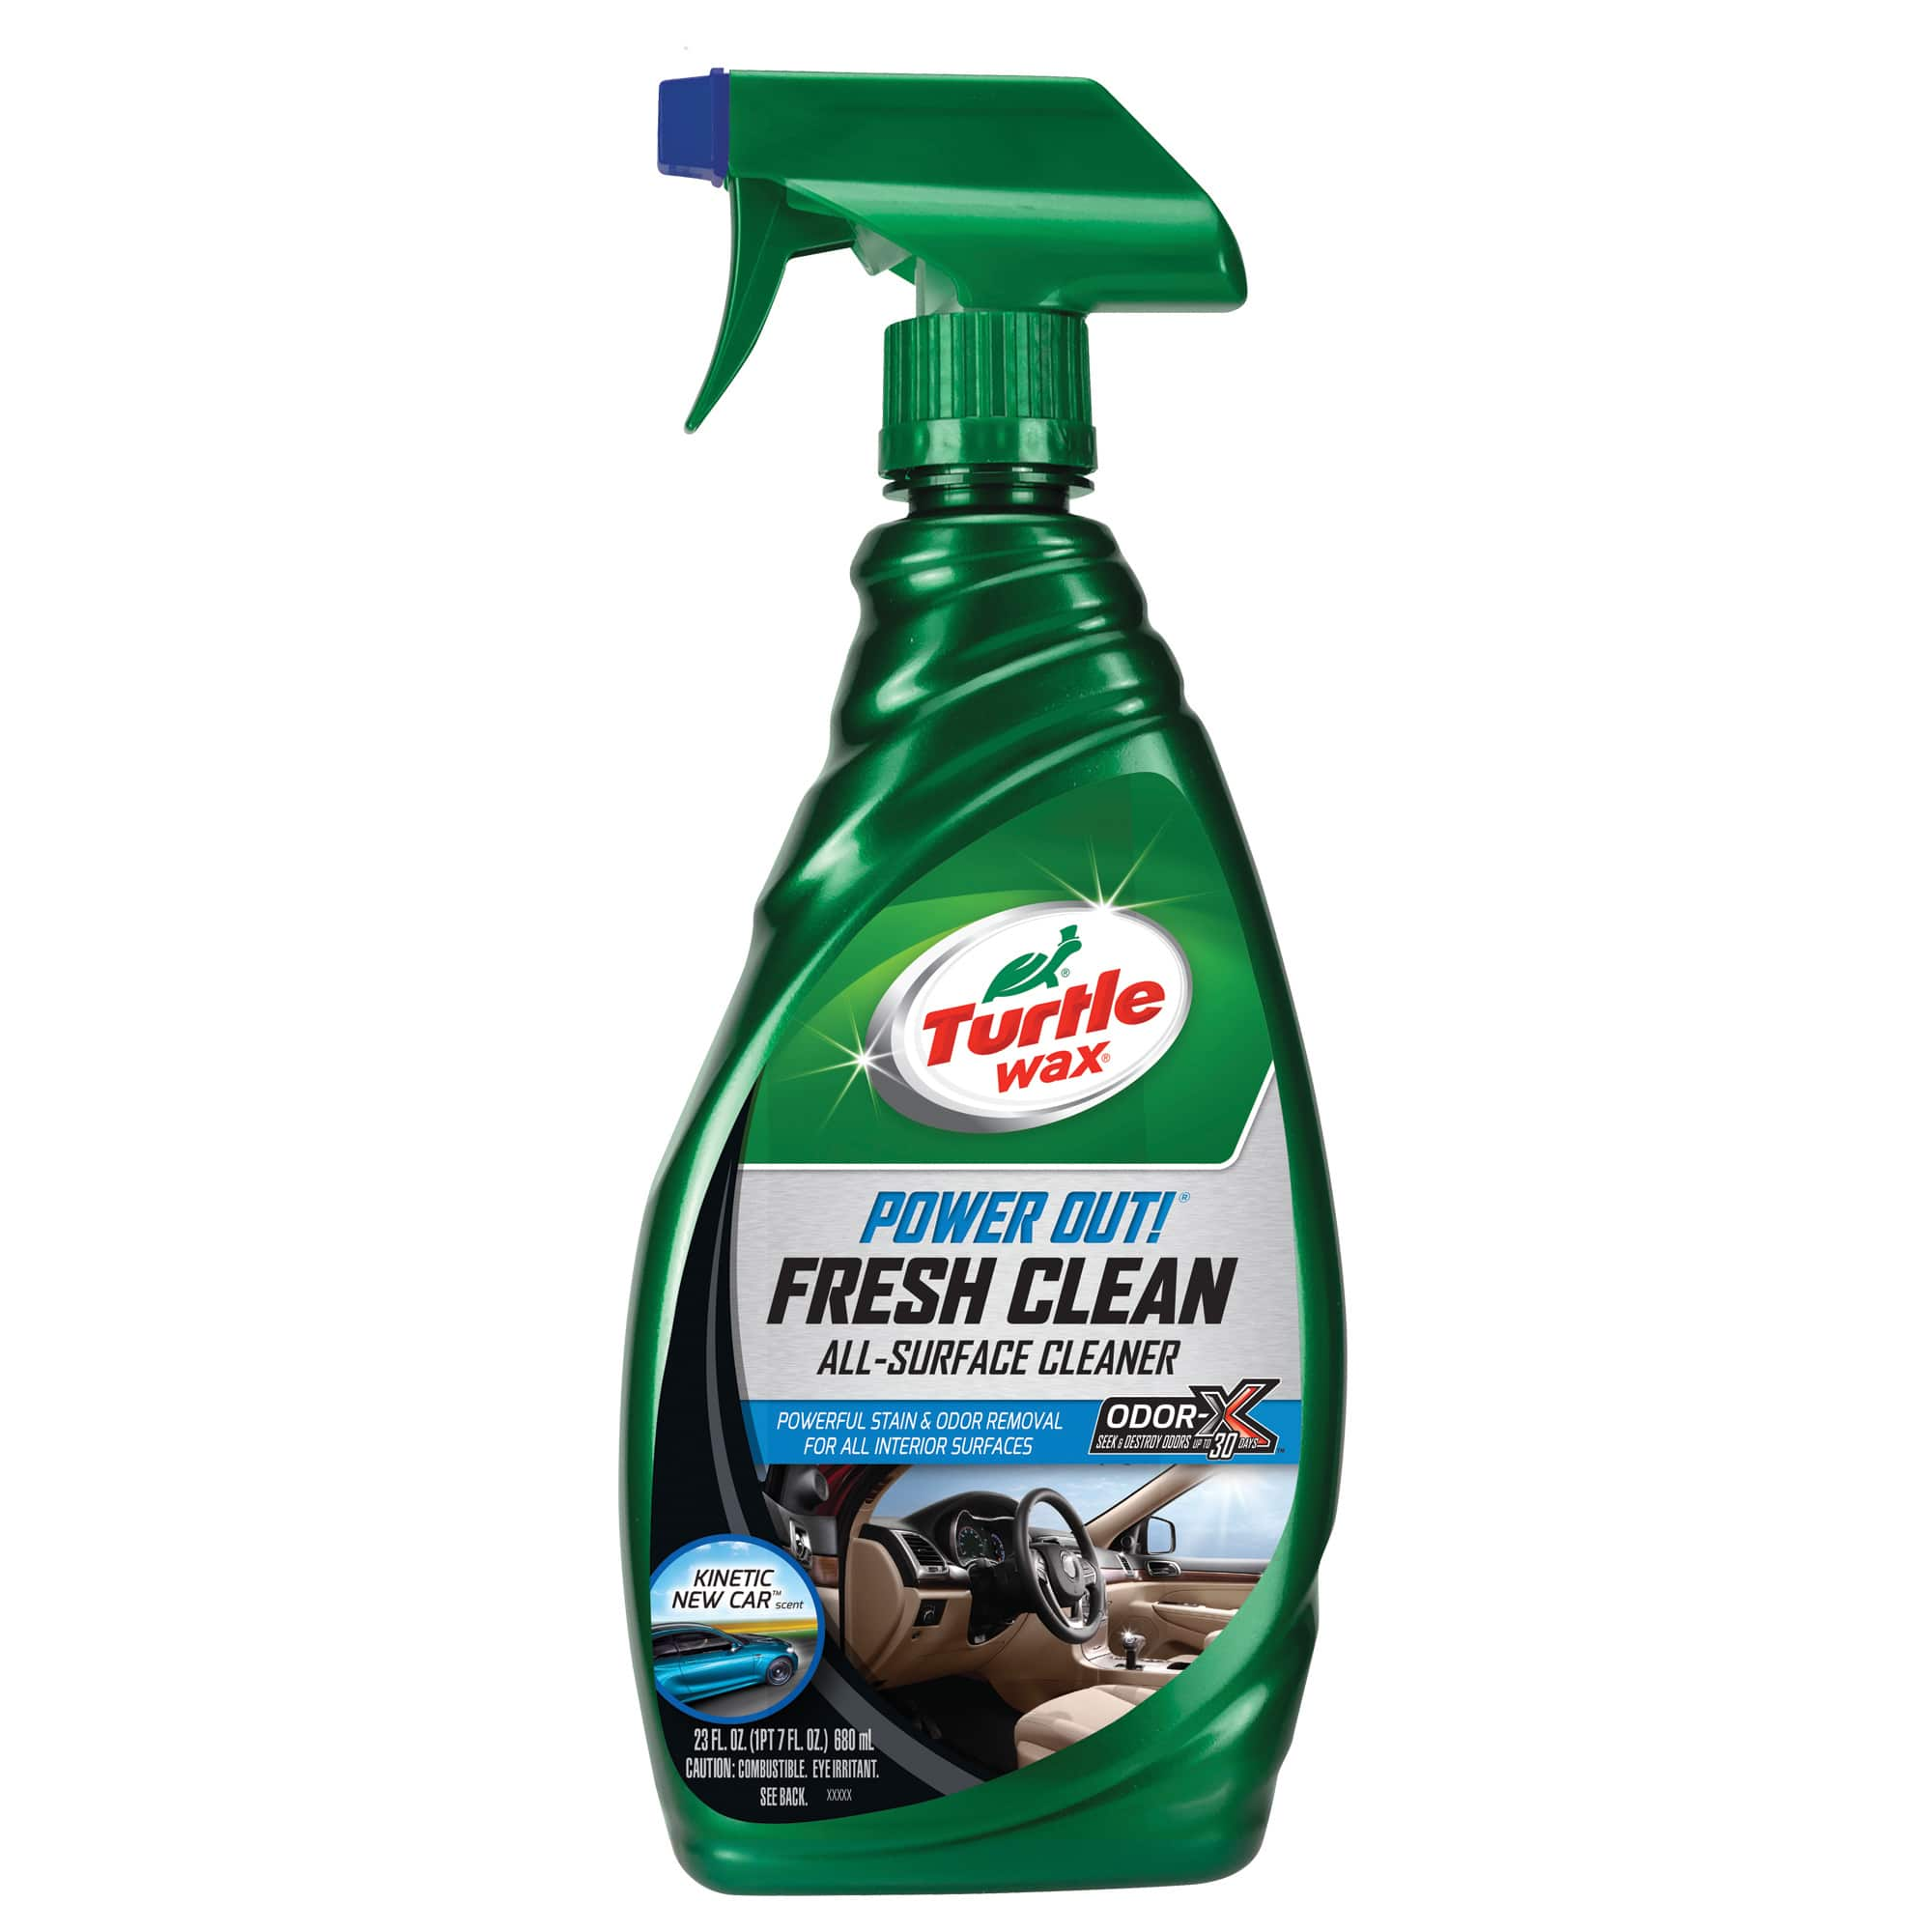 Turtlewax PO Fresh Clean for $1.45